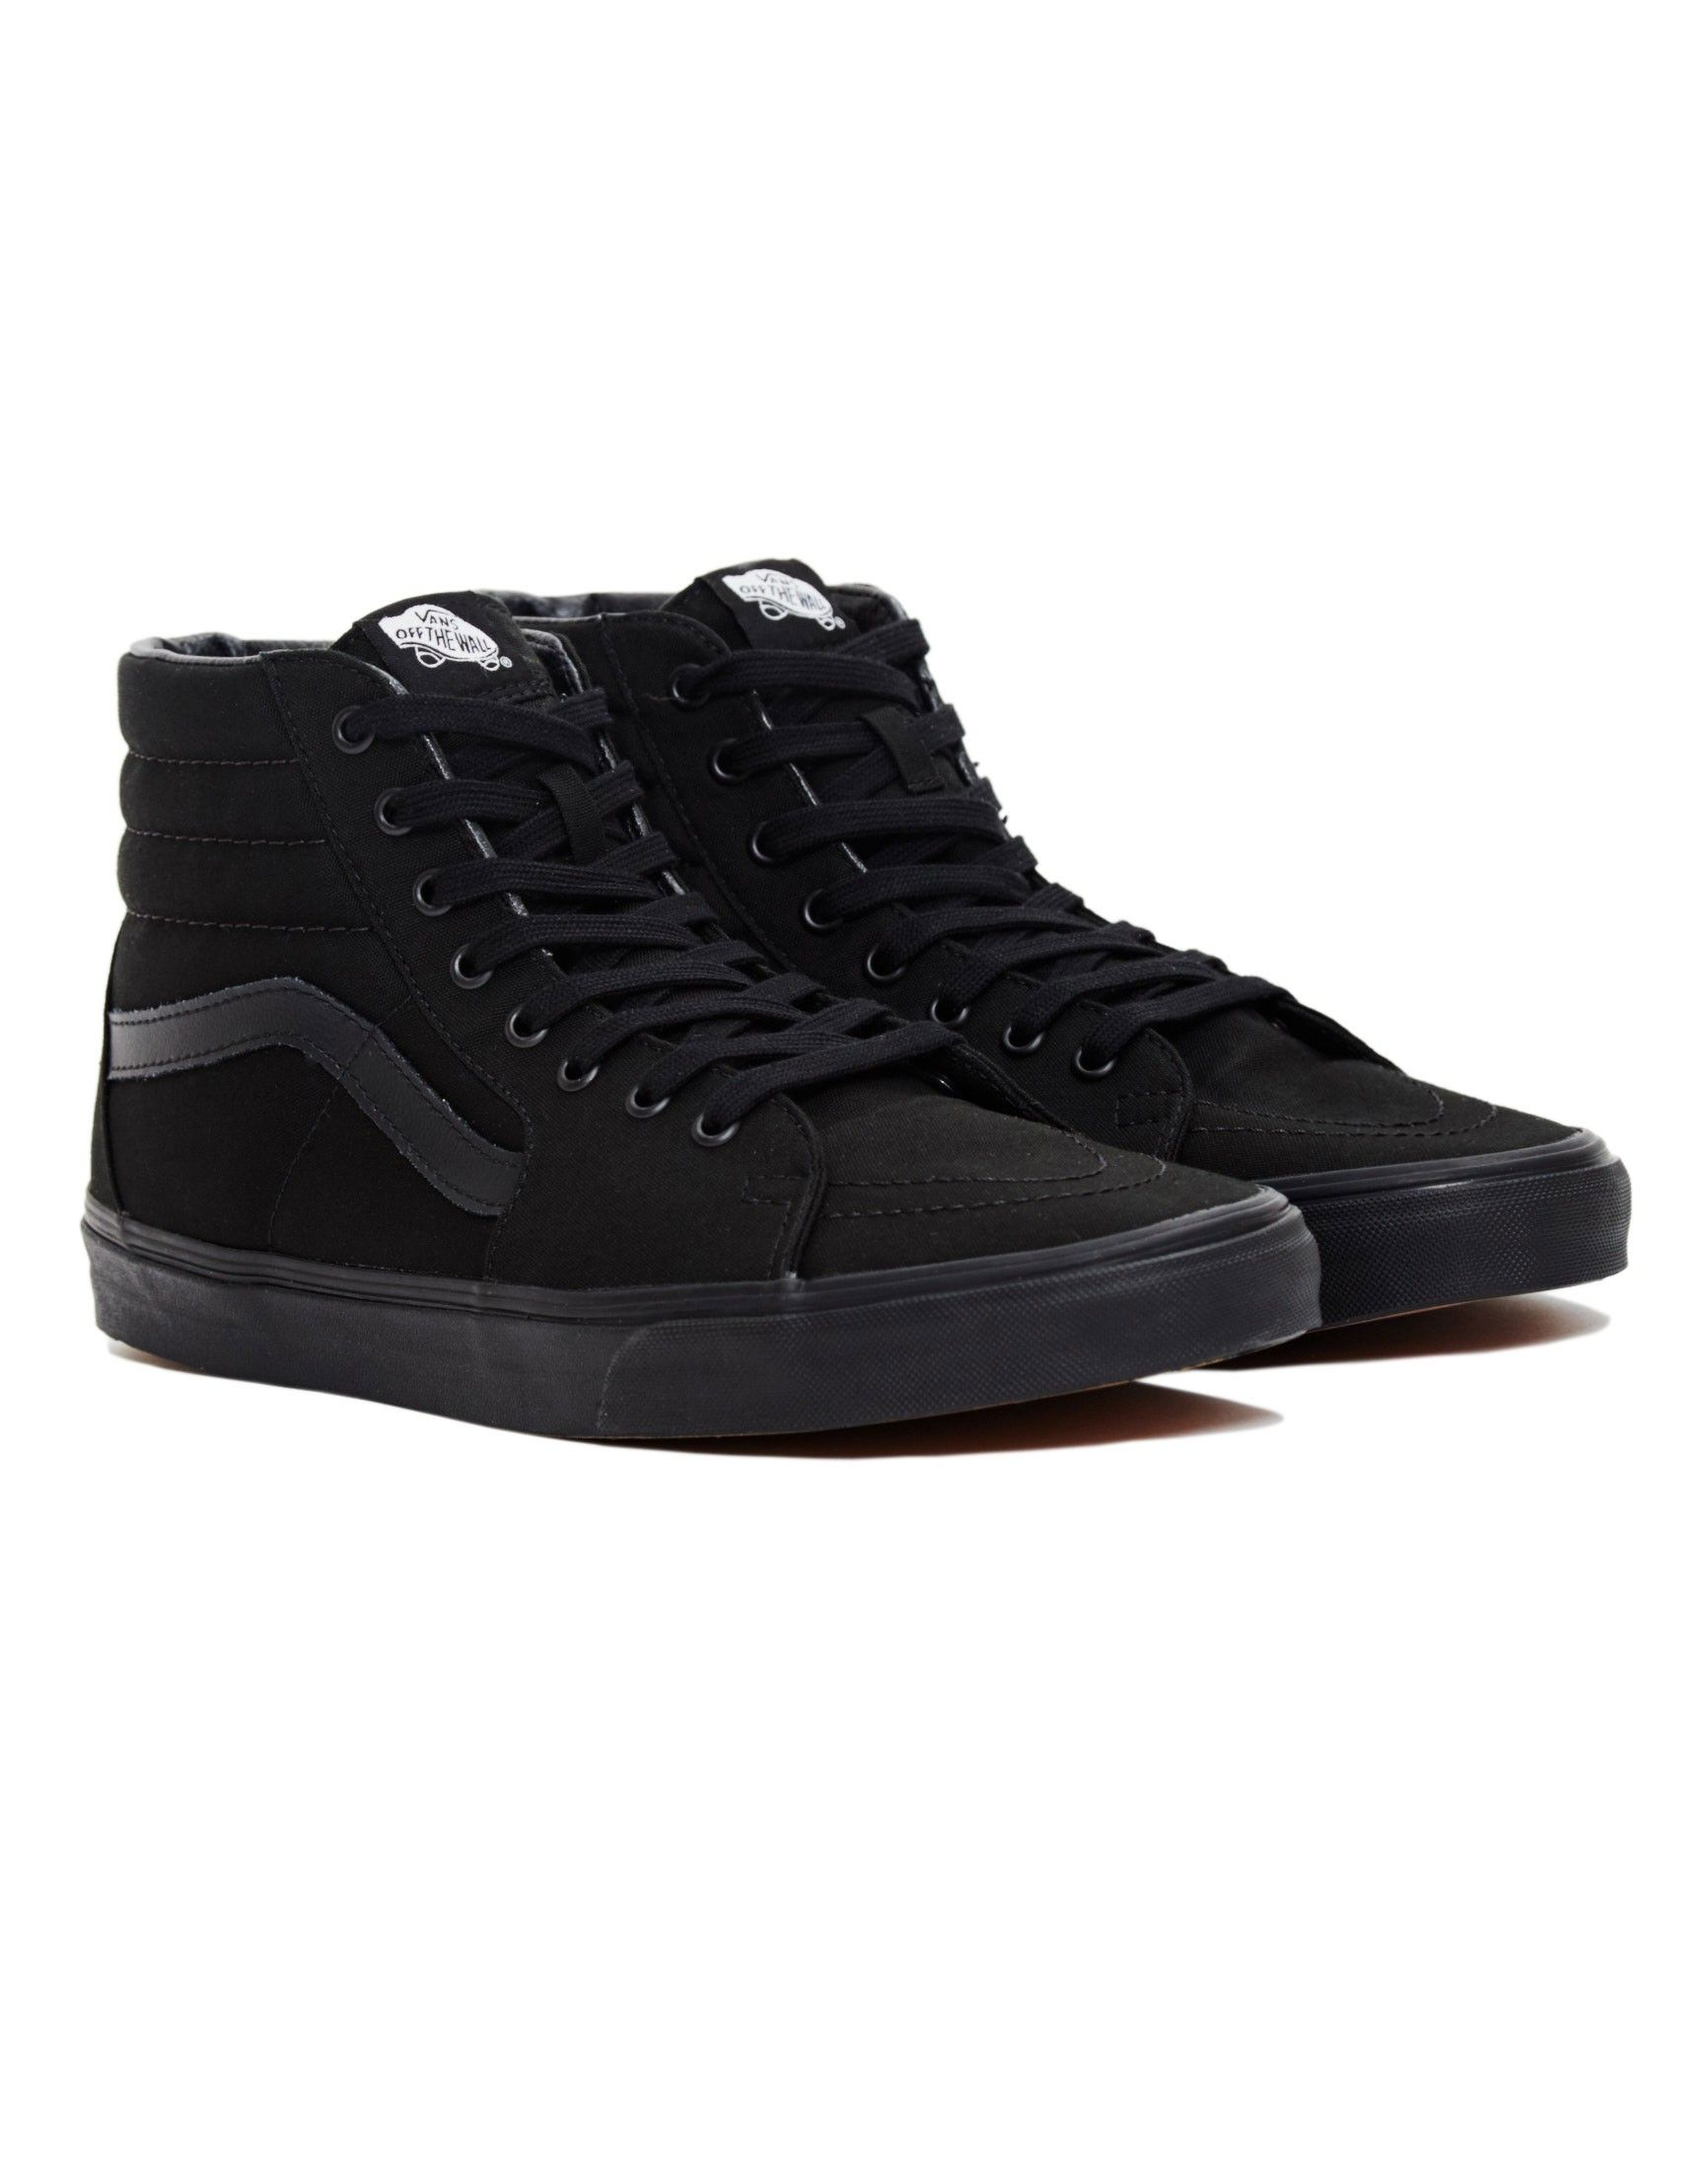 52d2c25b43 Vans Sk8-Hi Trainers All Black